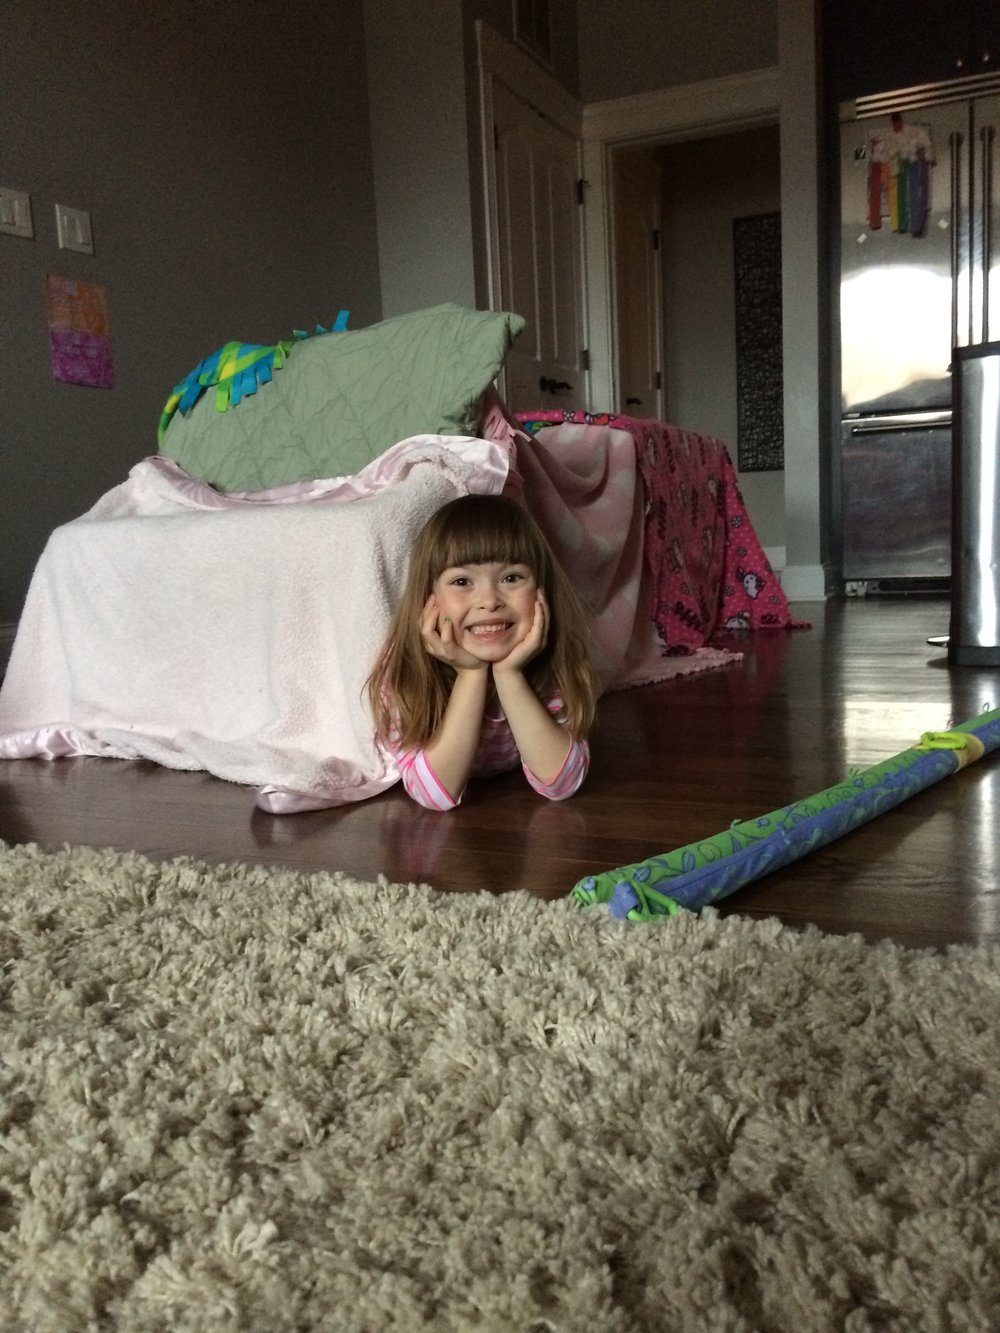 A small but mighty blanket fort!